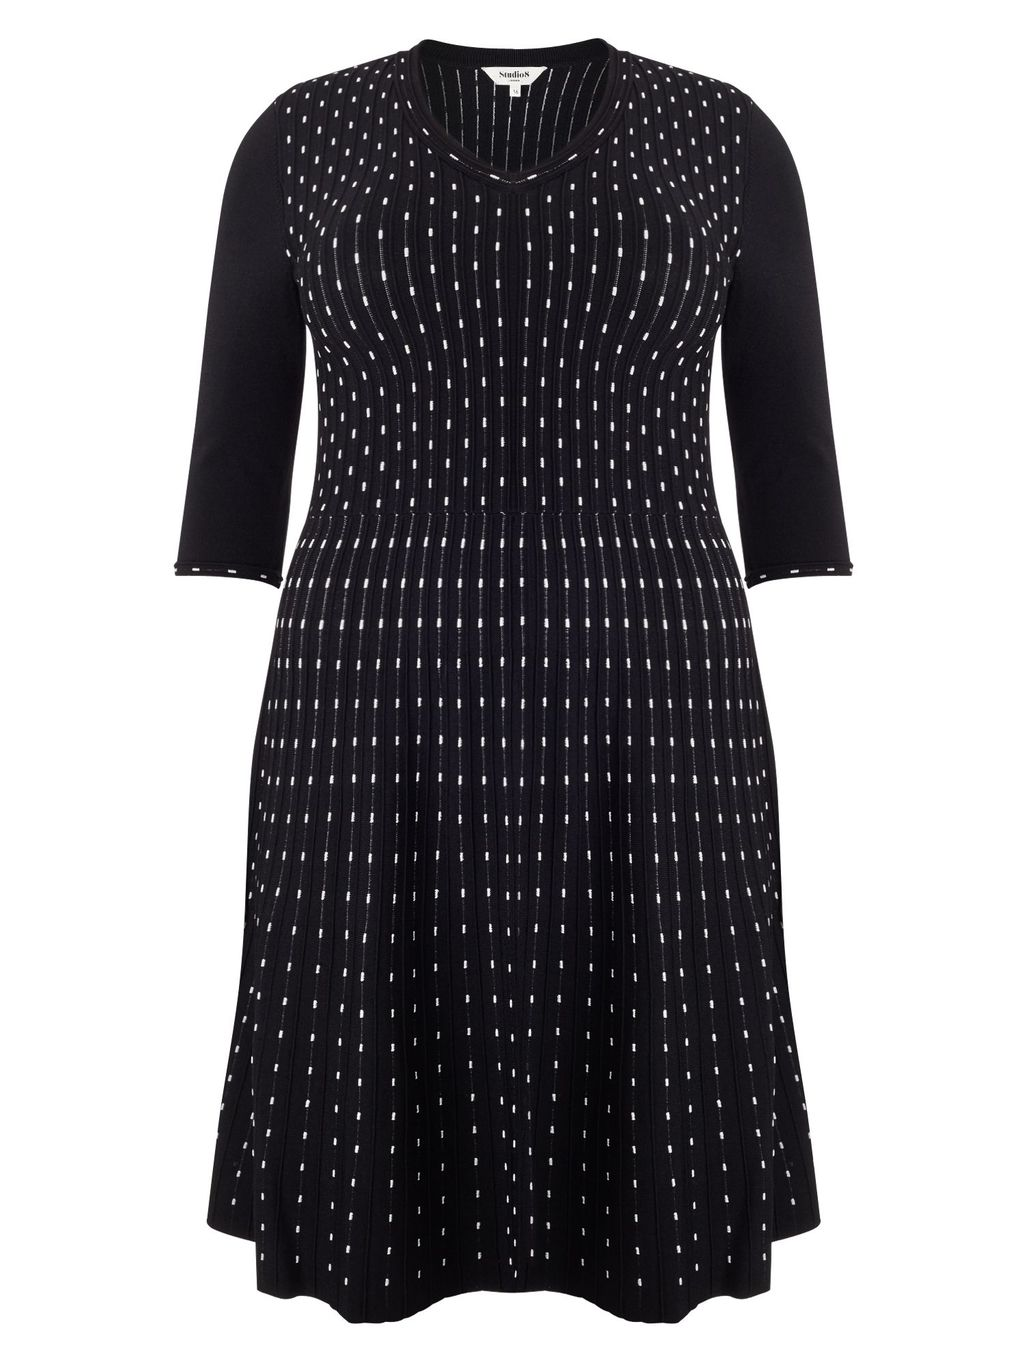 Milly Dress, Black - neckline: v-neck; pattern: polka dot; secondary colour: white; predominant colour: black; length: on the knee; fit: fitted at waist & bust; style: fit & flare; fibres: viscose/rayon - stretch; hip detail: soft pleats at hip/draping at hip/flared at hip; sleeve length: 3/4 length; sleeve style: standard; trends: monochrome; pattern type: fabric; pattern size: standard; texture group: woven light midweight; occasions: creative work; season: a/w 2015; wardrobe: highlight